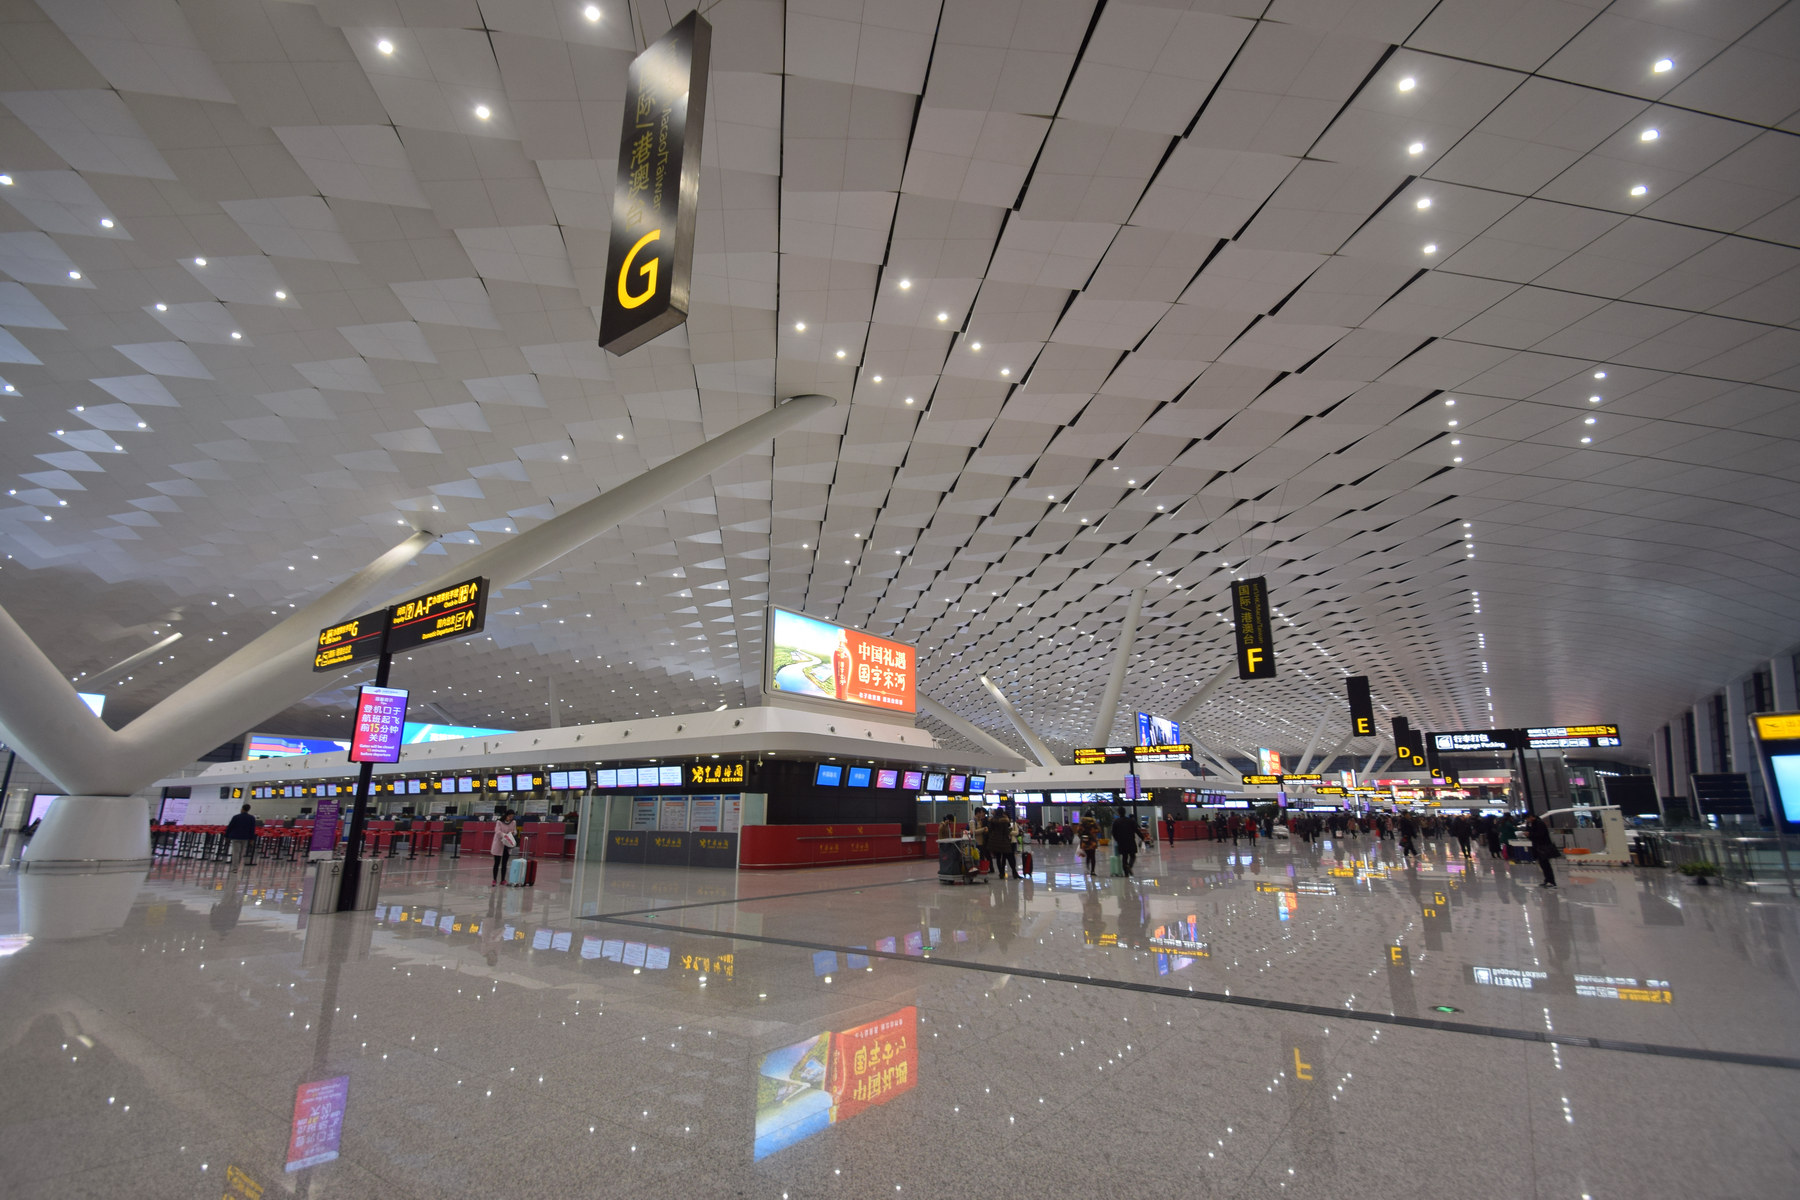 Zhengzhou Airport has a Ground Transportation Center, a very important transportation hub, inside Terminal 2.